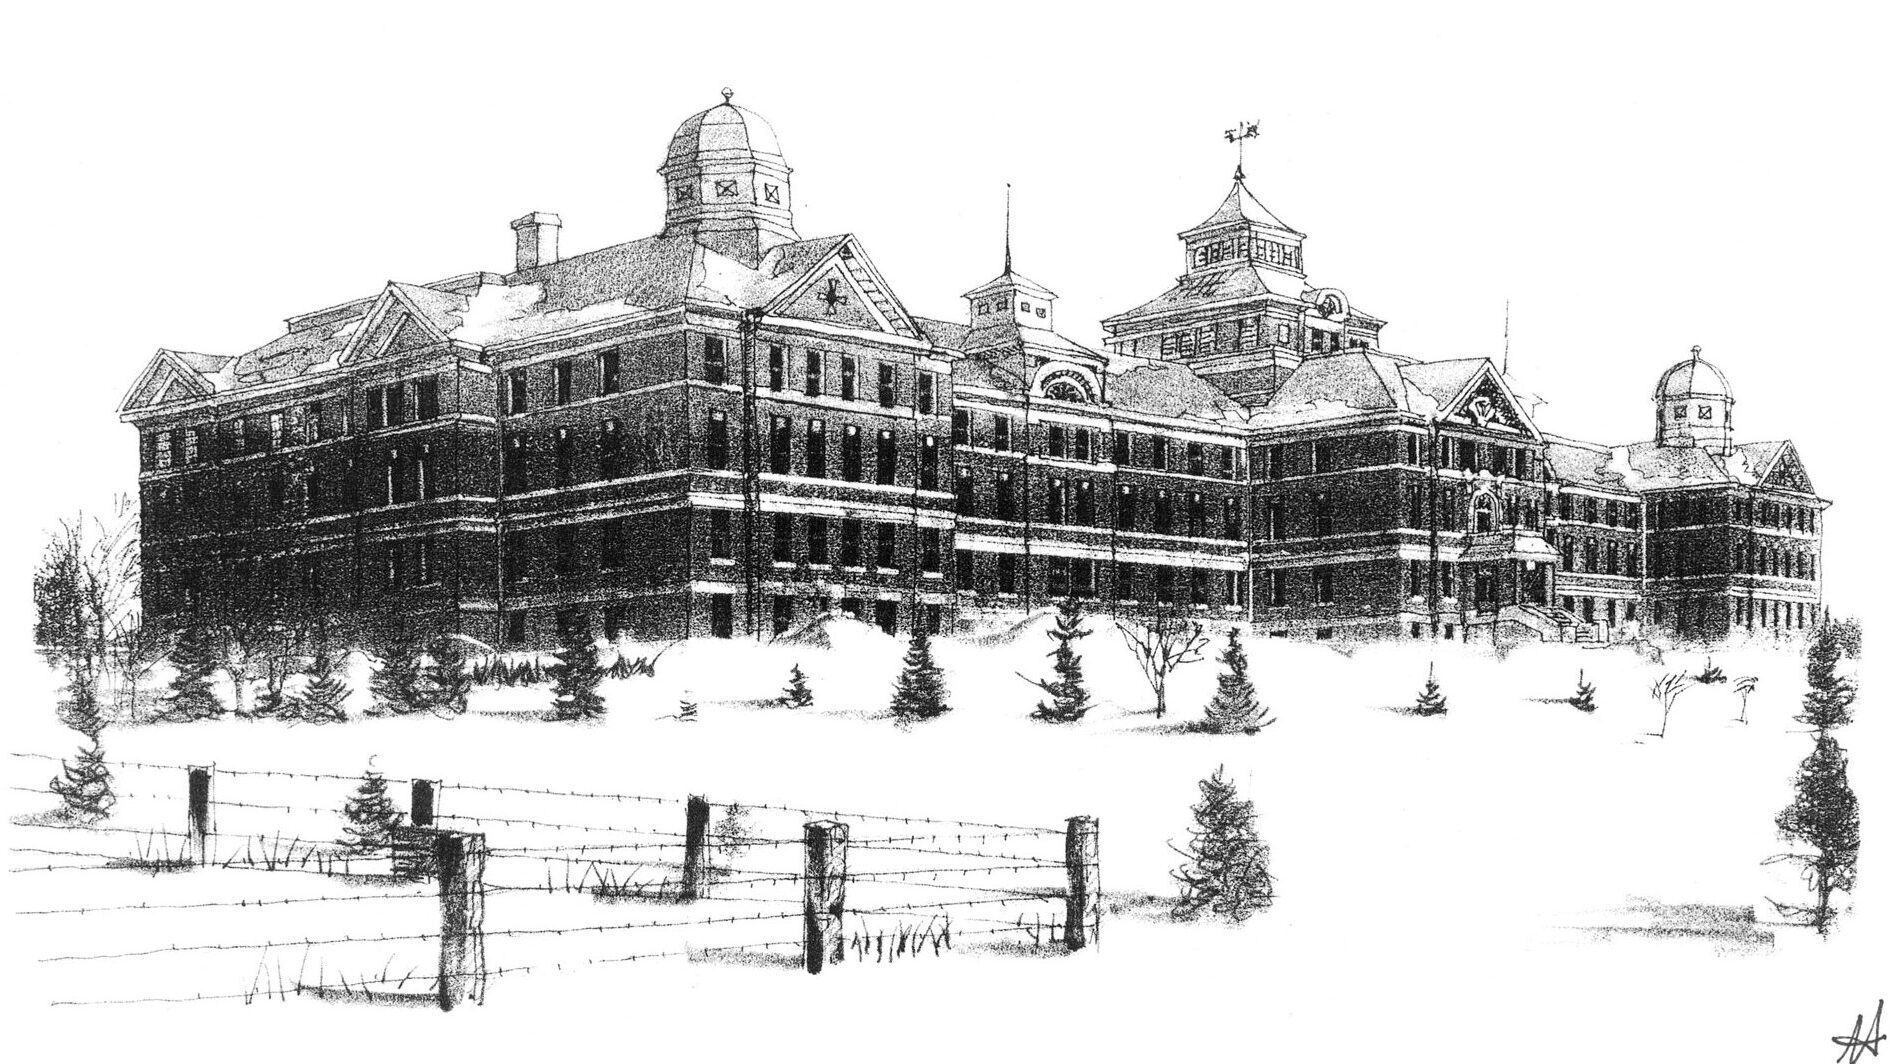 sketch of large grand asylum with field and fencing in front